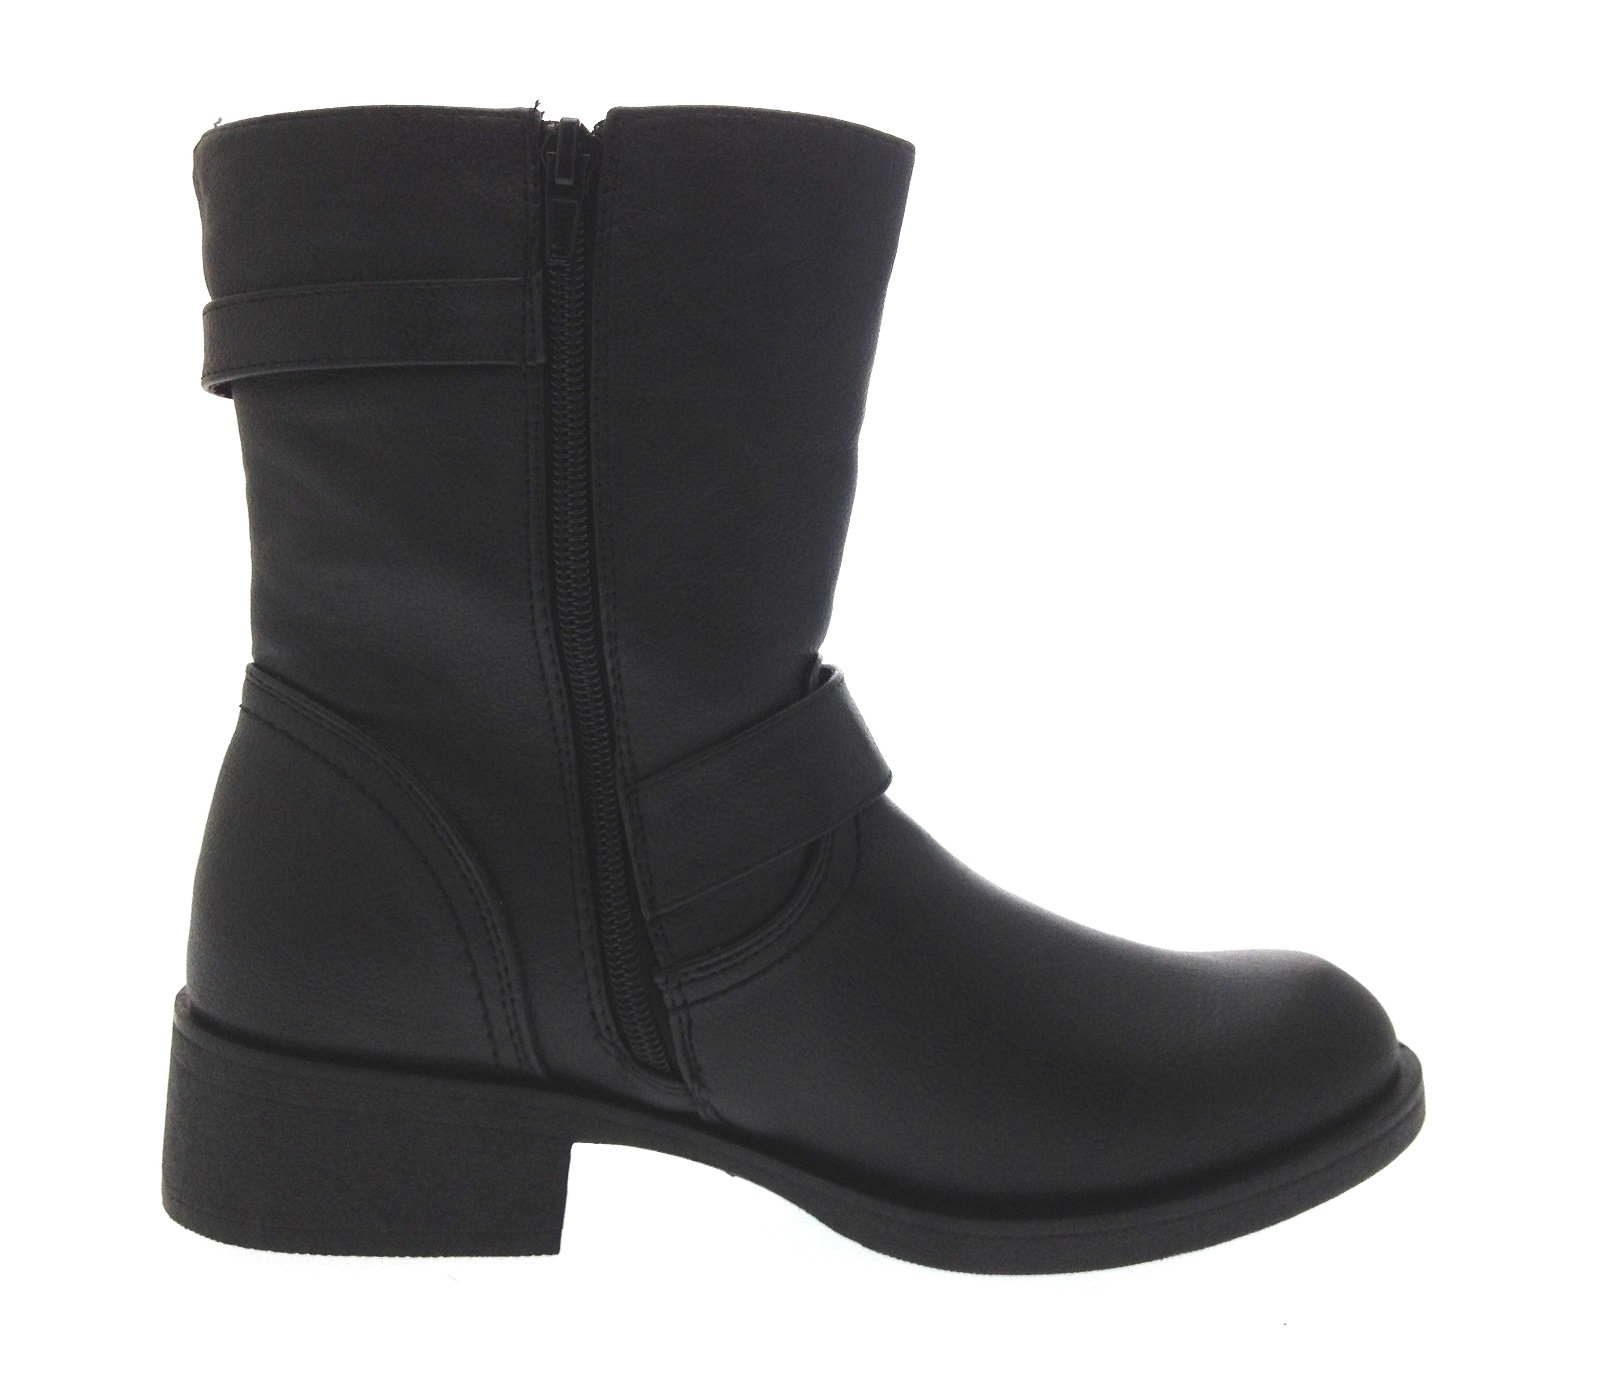 Womens Biker Boots Mid Calf / Ankle Buckle Warm Winter